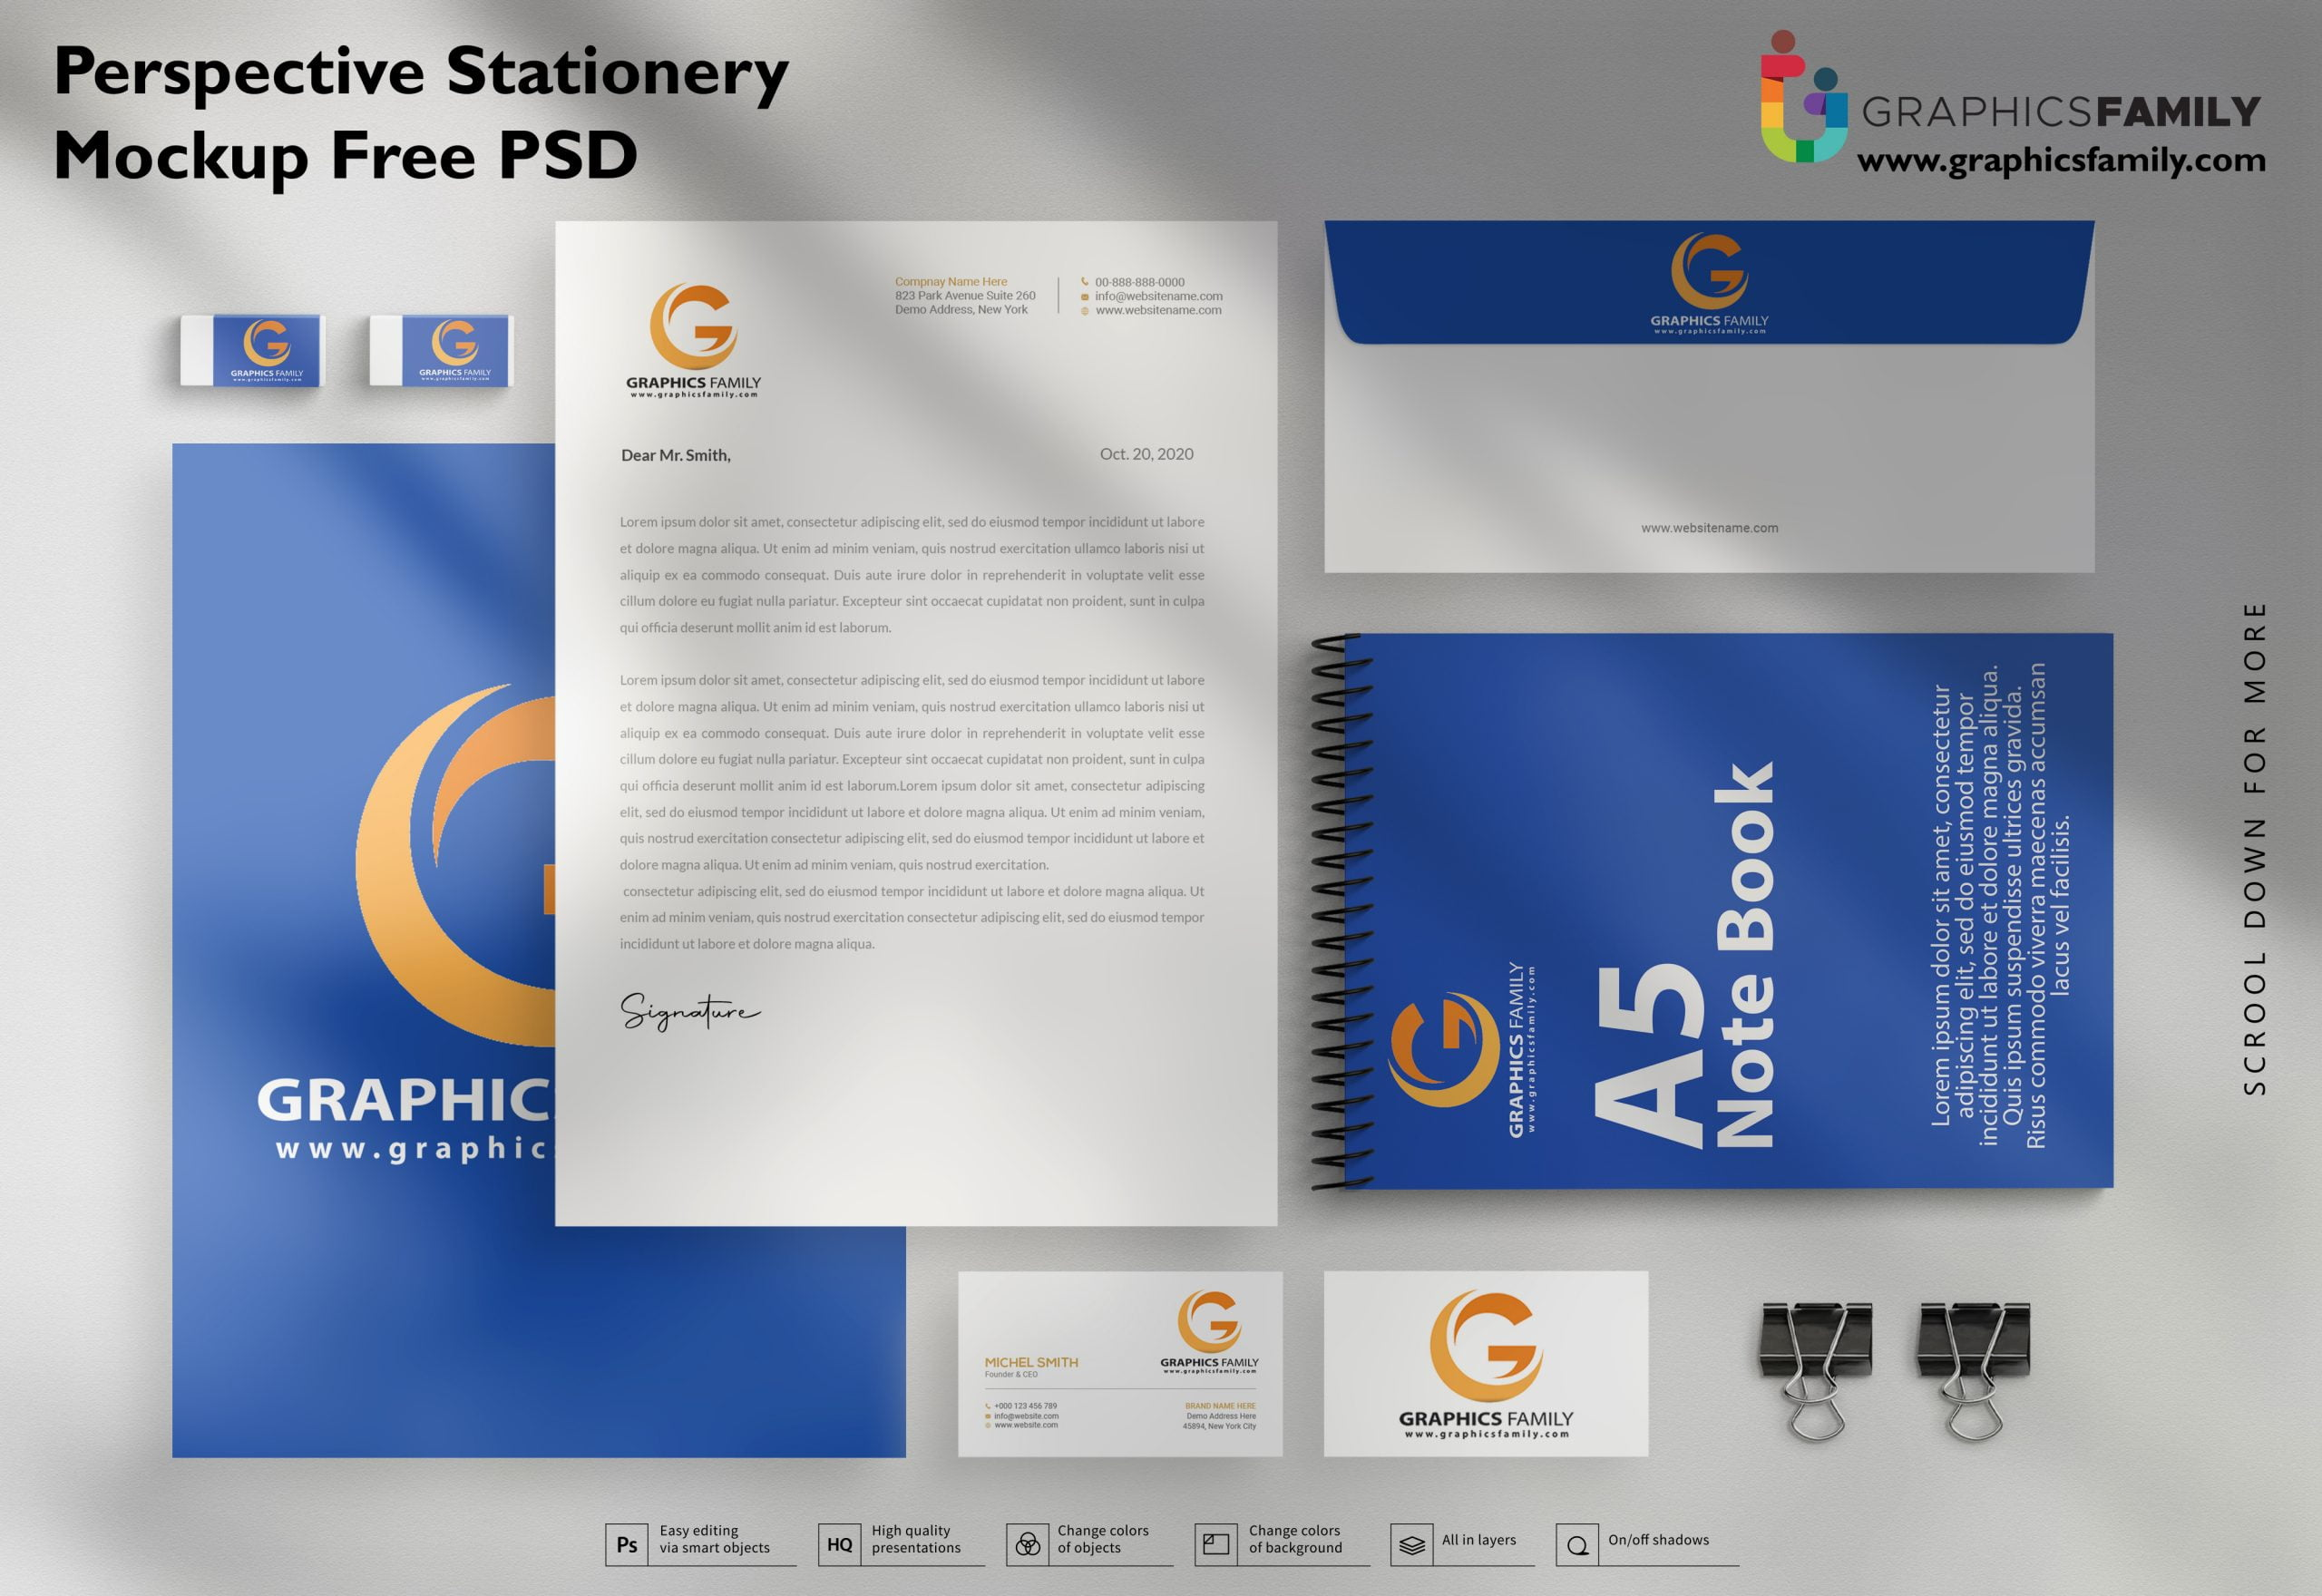 Perspective-Stationery-Mockup-Free-Psd-Download